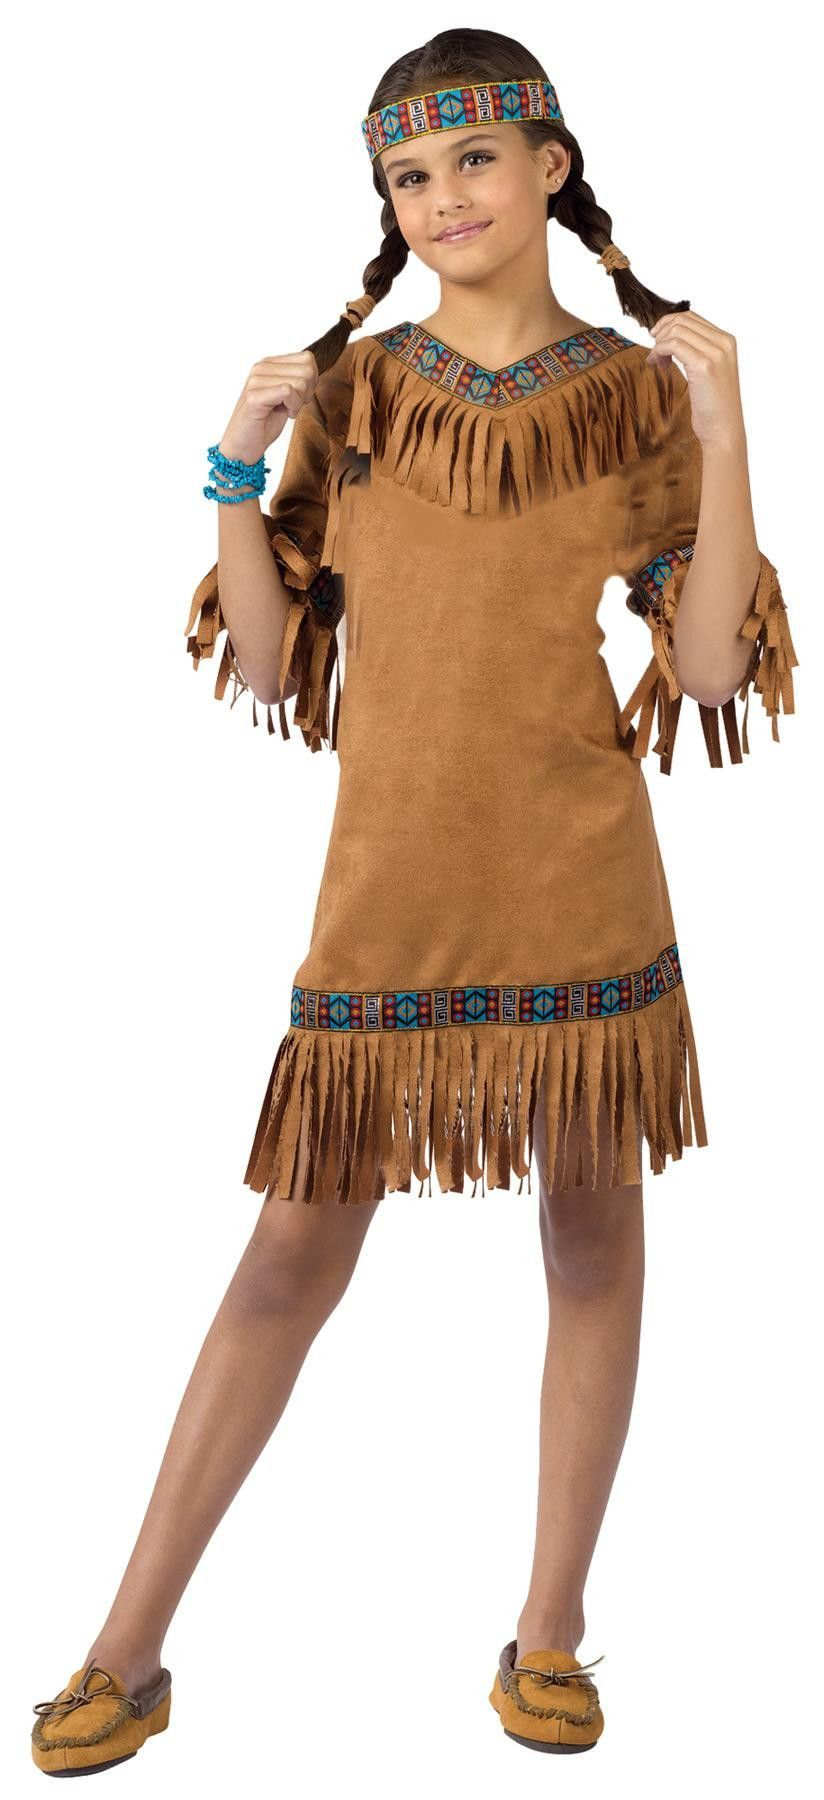 American Indian Girl Child  sc 1 st  Pinterest & American Indian Girl Child | American indian girl and Halloween costumes